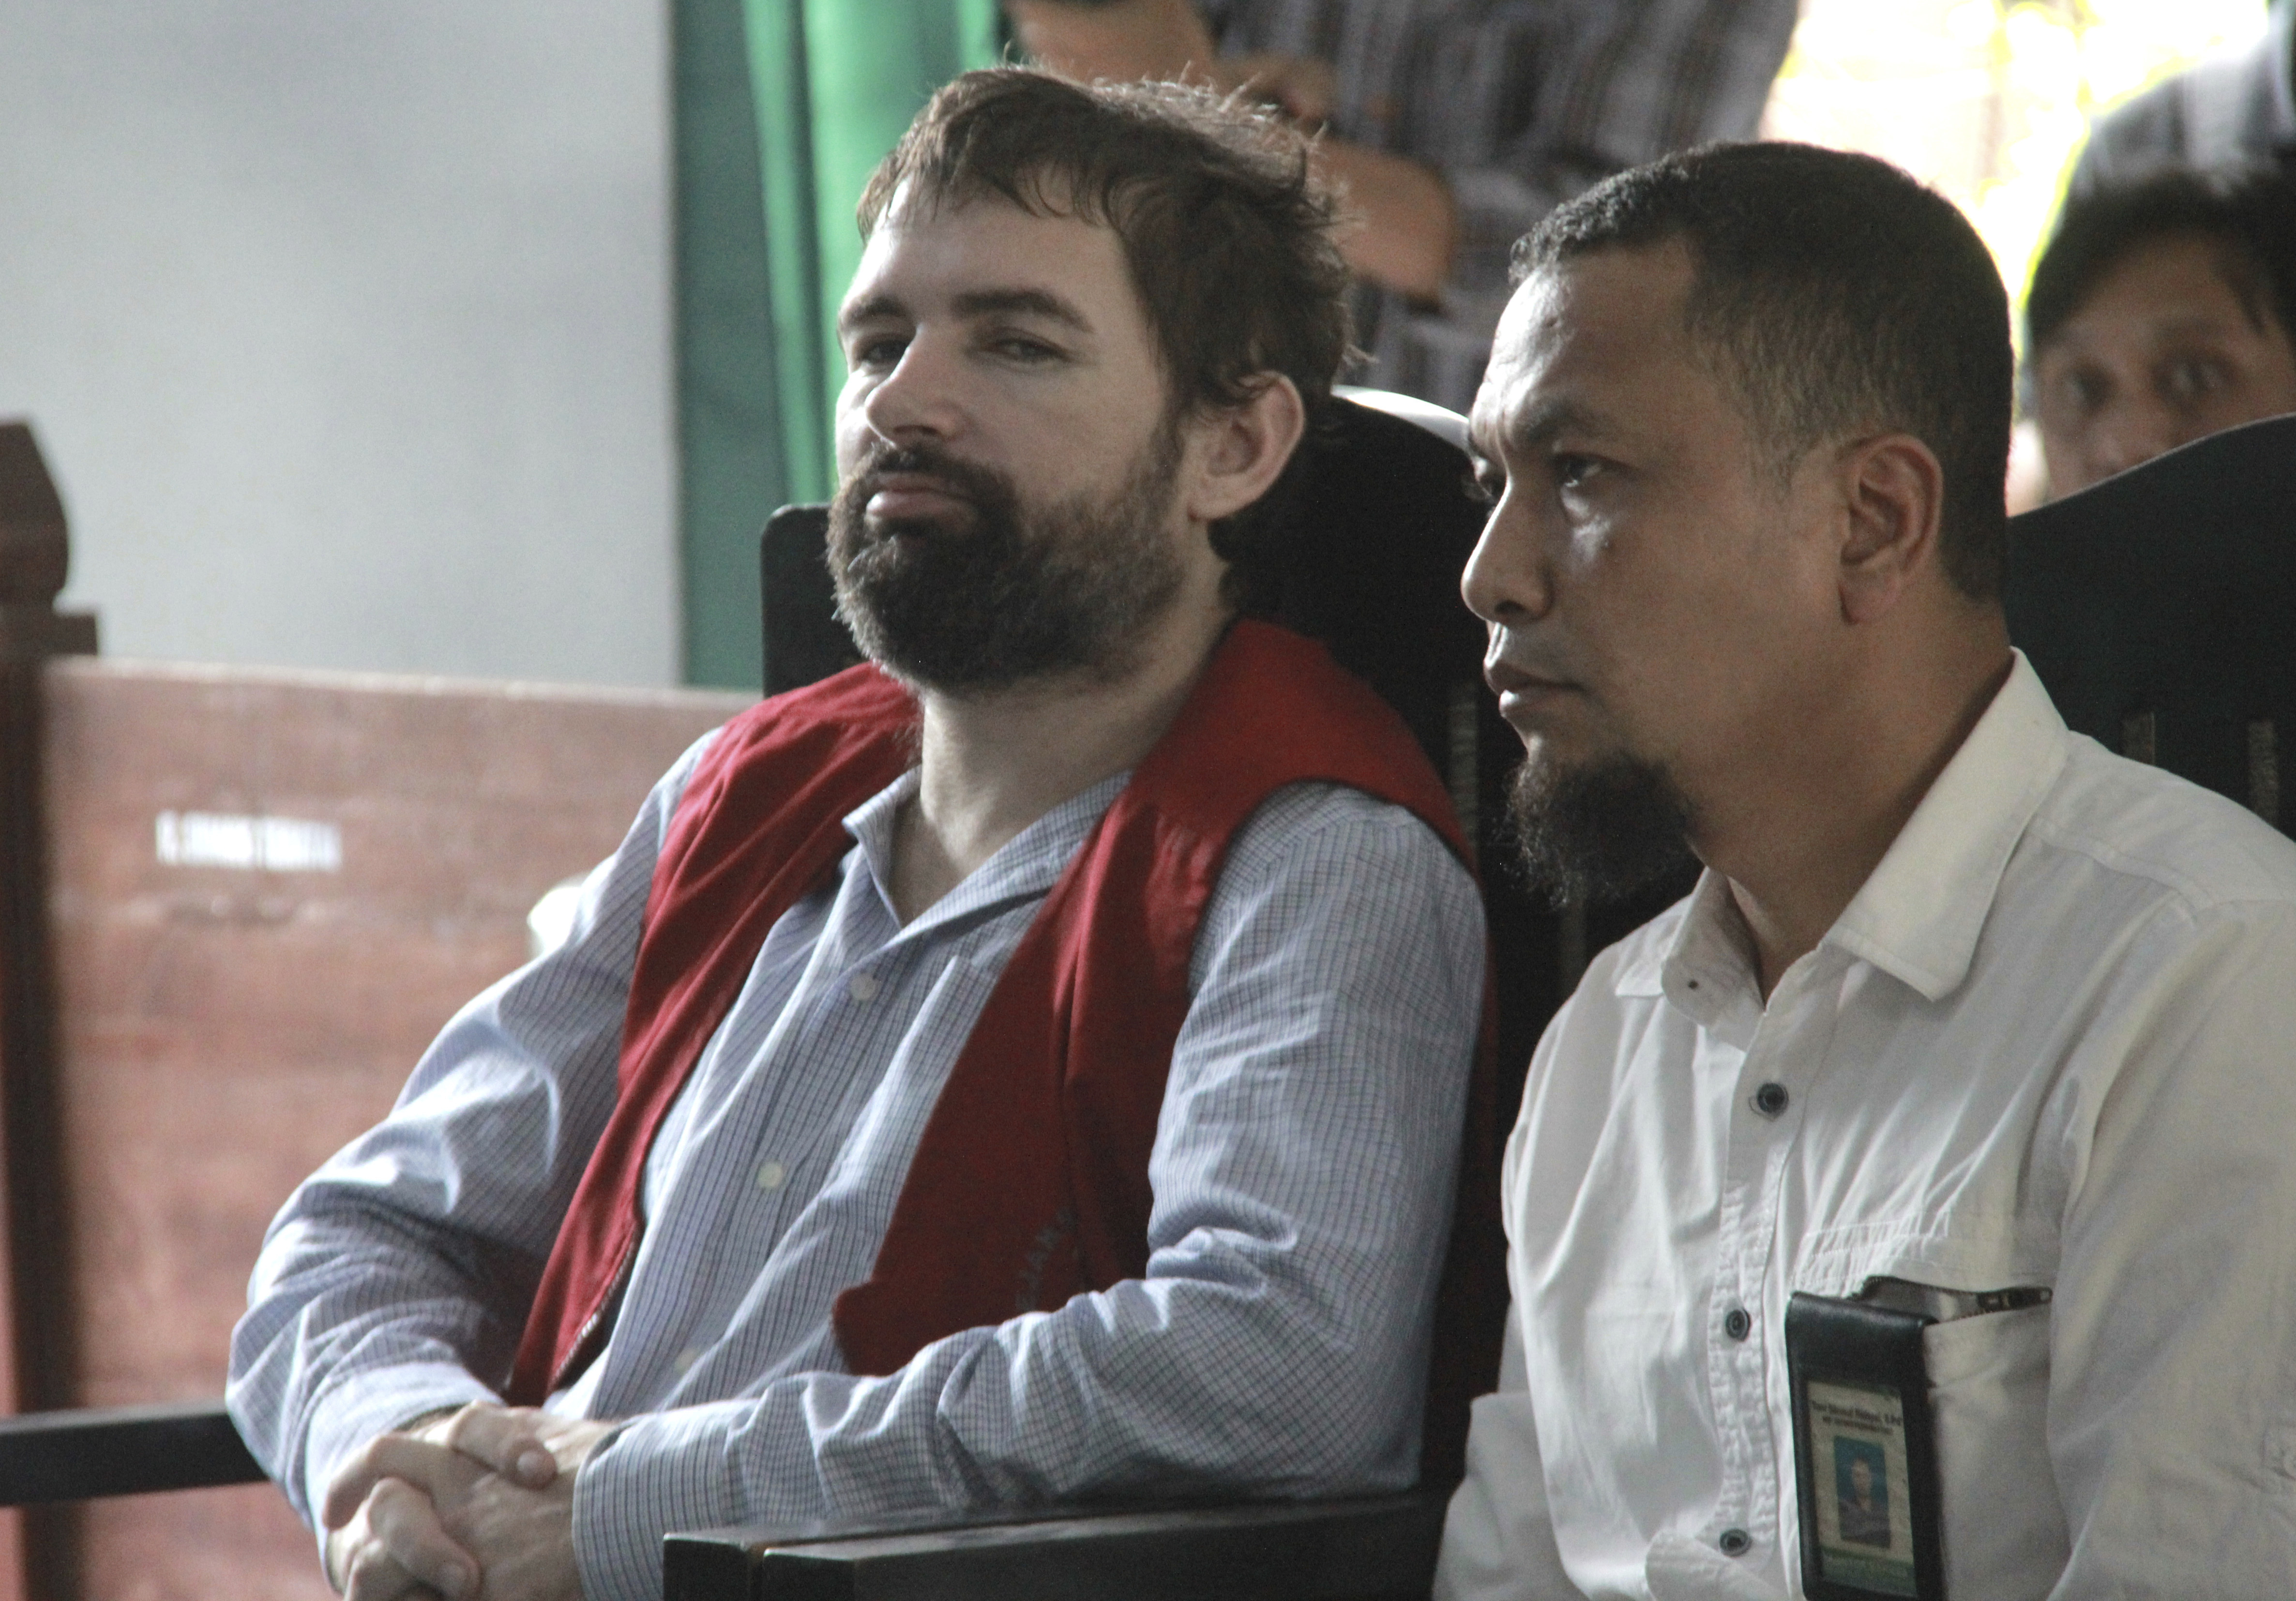 French national Felix Dorfin, left, is accompanied by an interpreter during his sentencing hearing at a district court in Mataram, Lombok Island, Indonesia, on May 20, 2019.